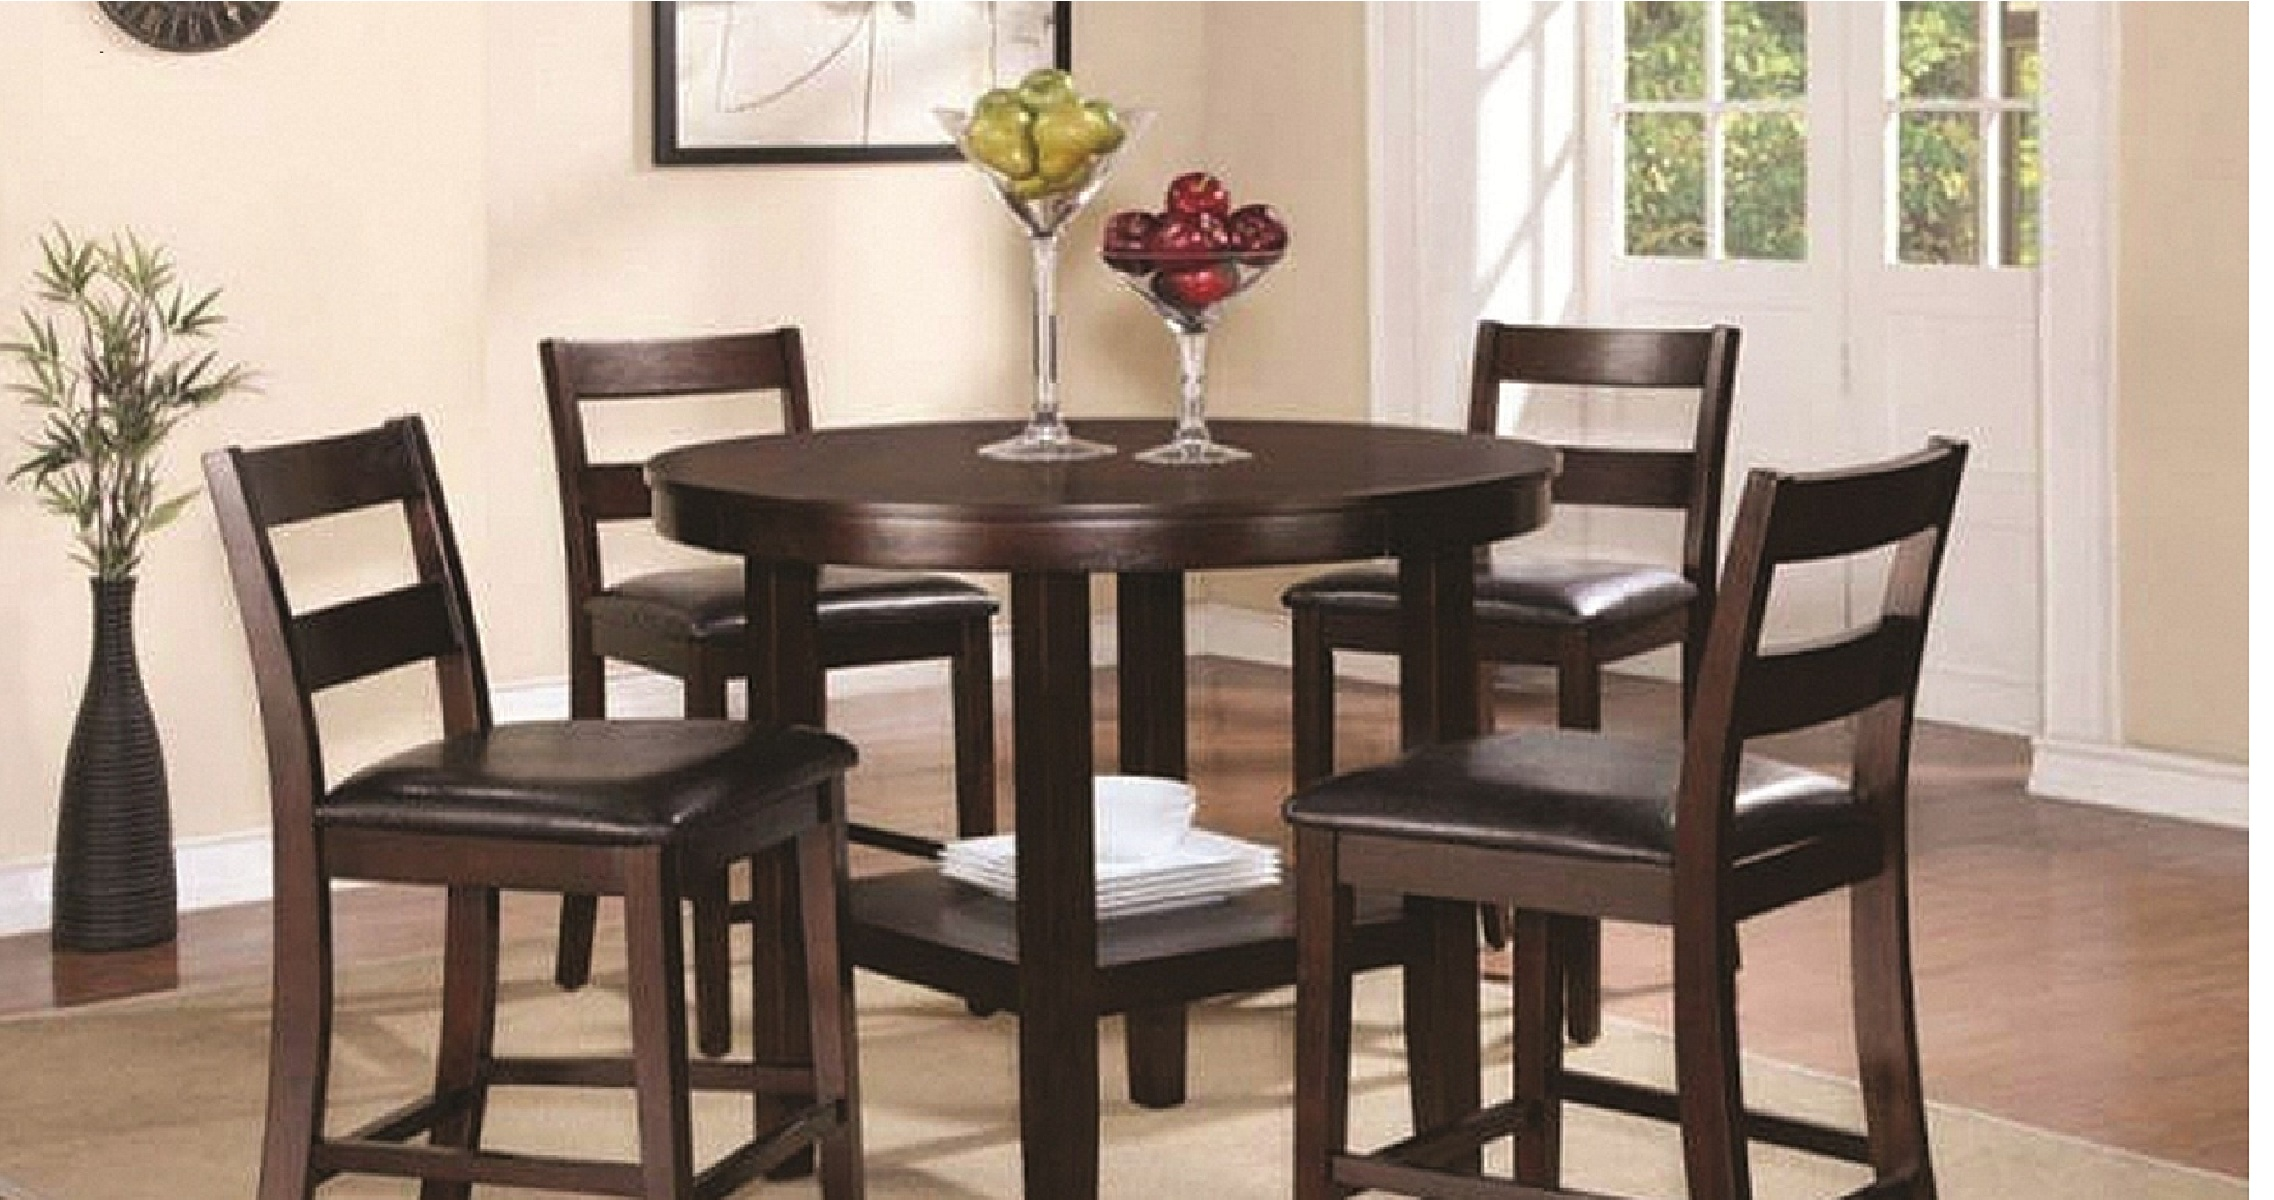 5 Piece Counter High Dining Set (Dining Table and 4 Barstools)